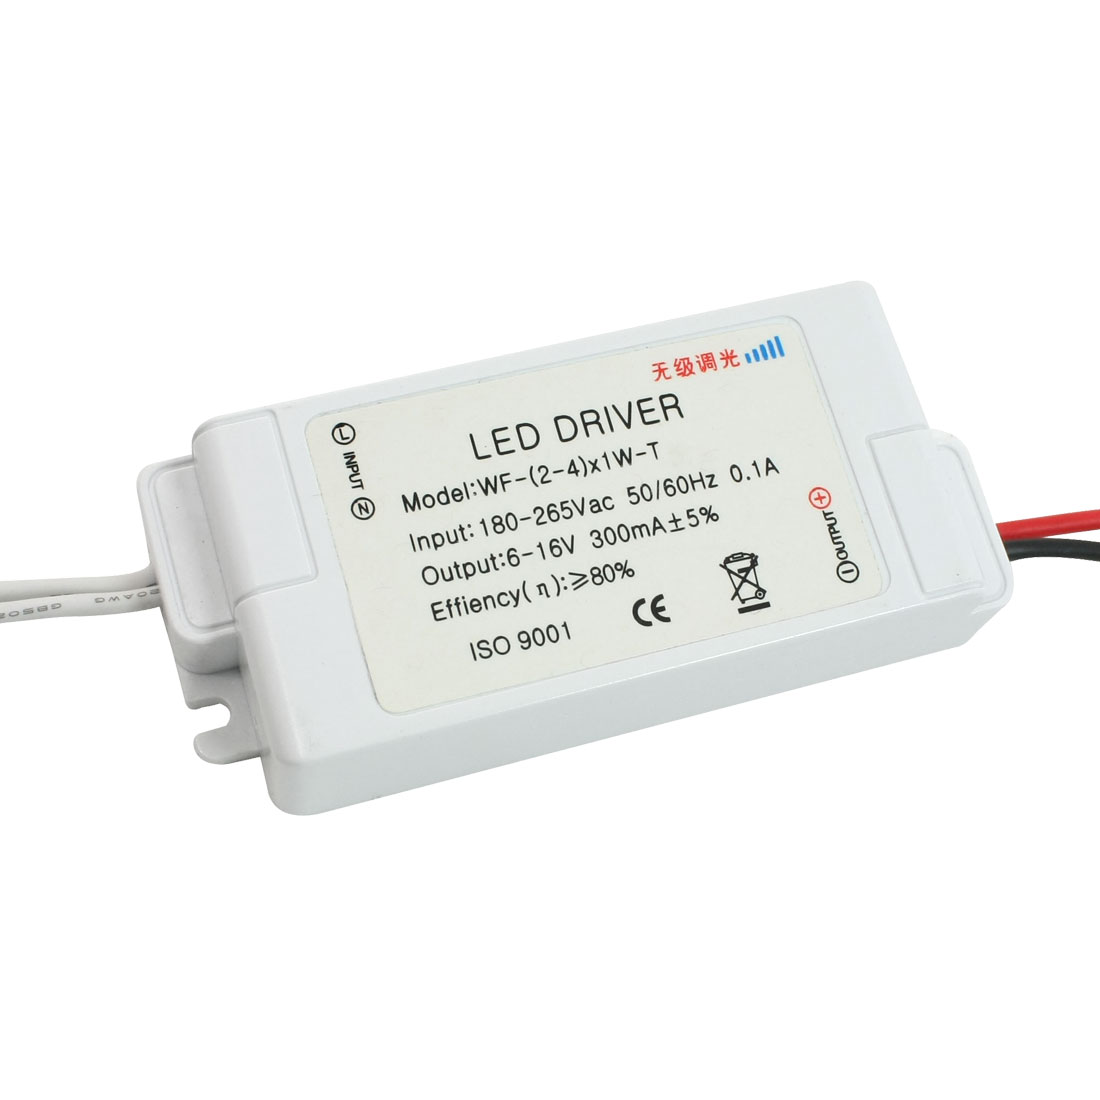 AC 180-265V DC 6-16V Stepless Dimmer Driver Power Supply for (2-4)x1W LED Light